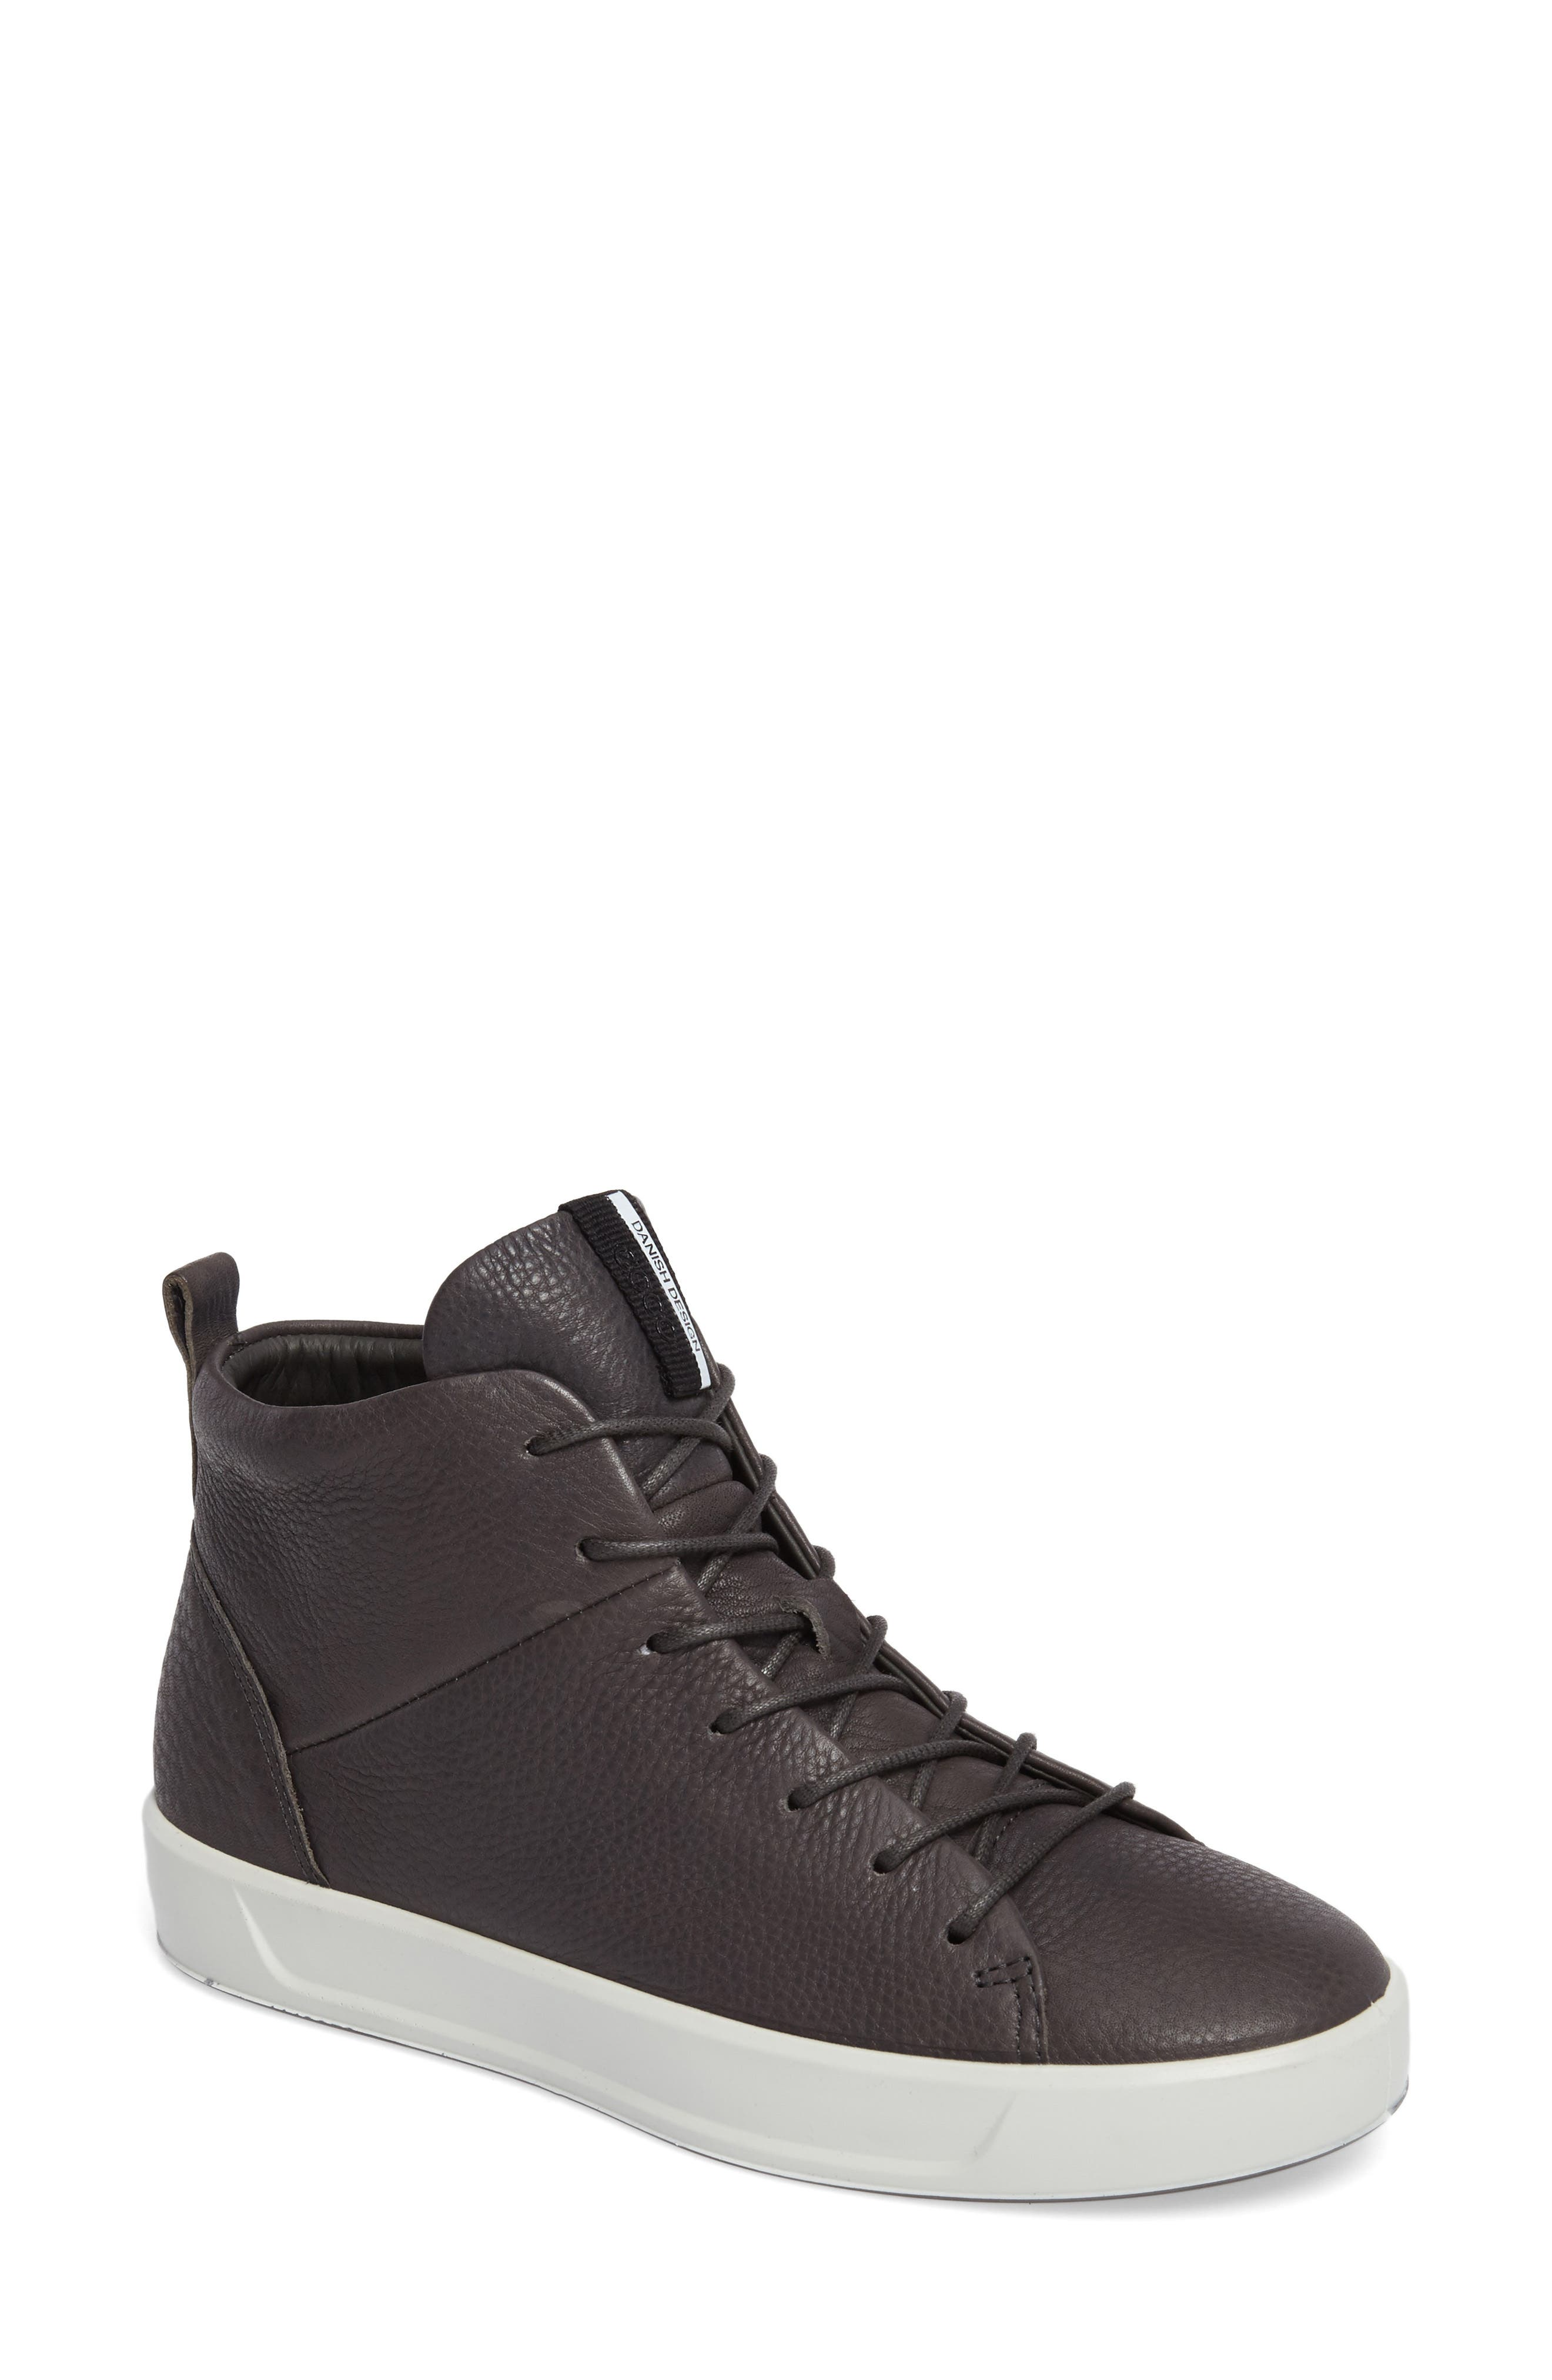 Soft 8 High Top Sneaker,                             Main thumbnail 1, color,                             Dark Shadow Leather